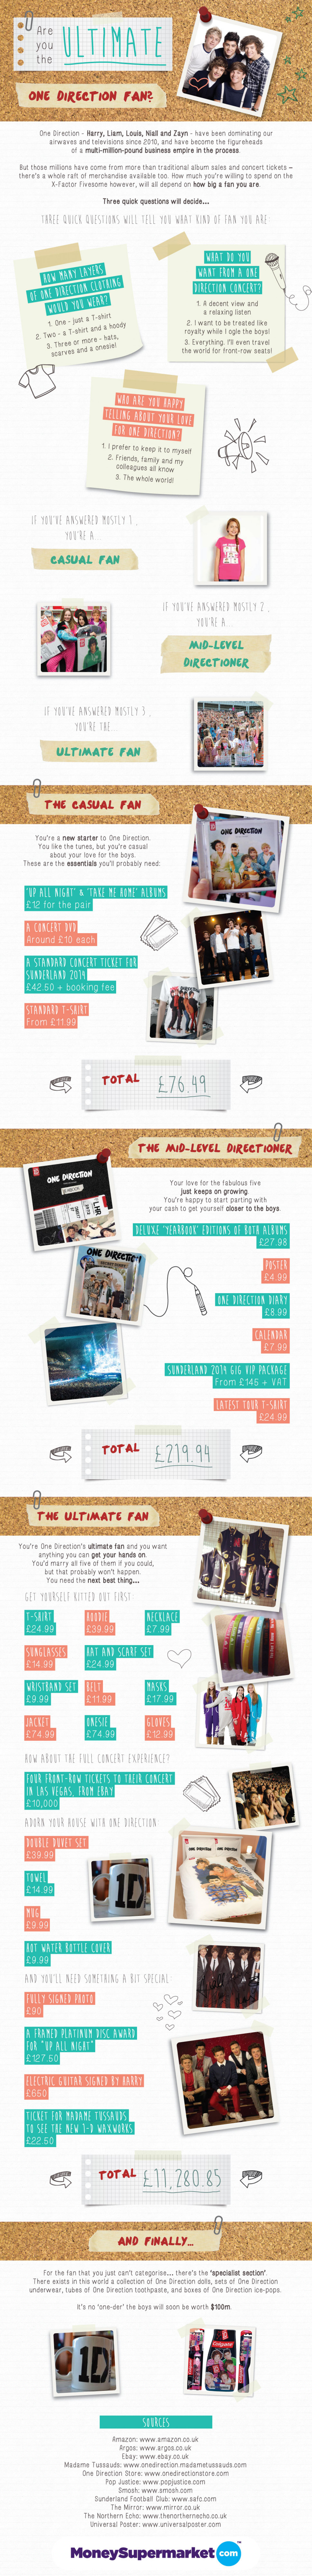 Are You the Ultimate One Direction Fan? Infographic